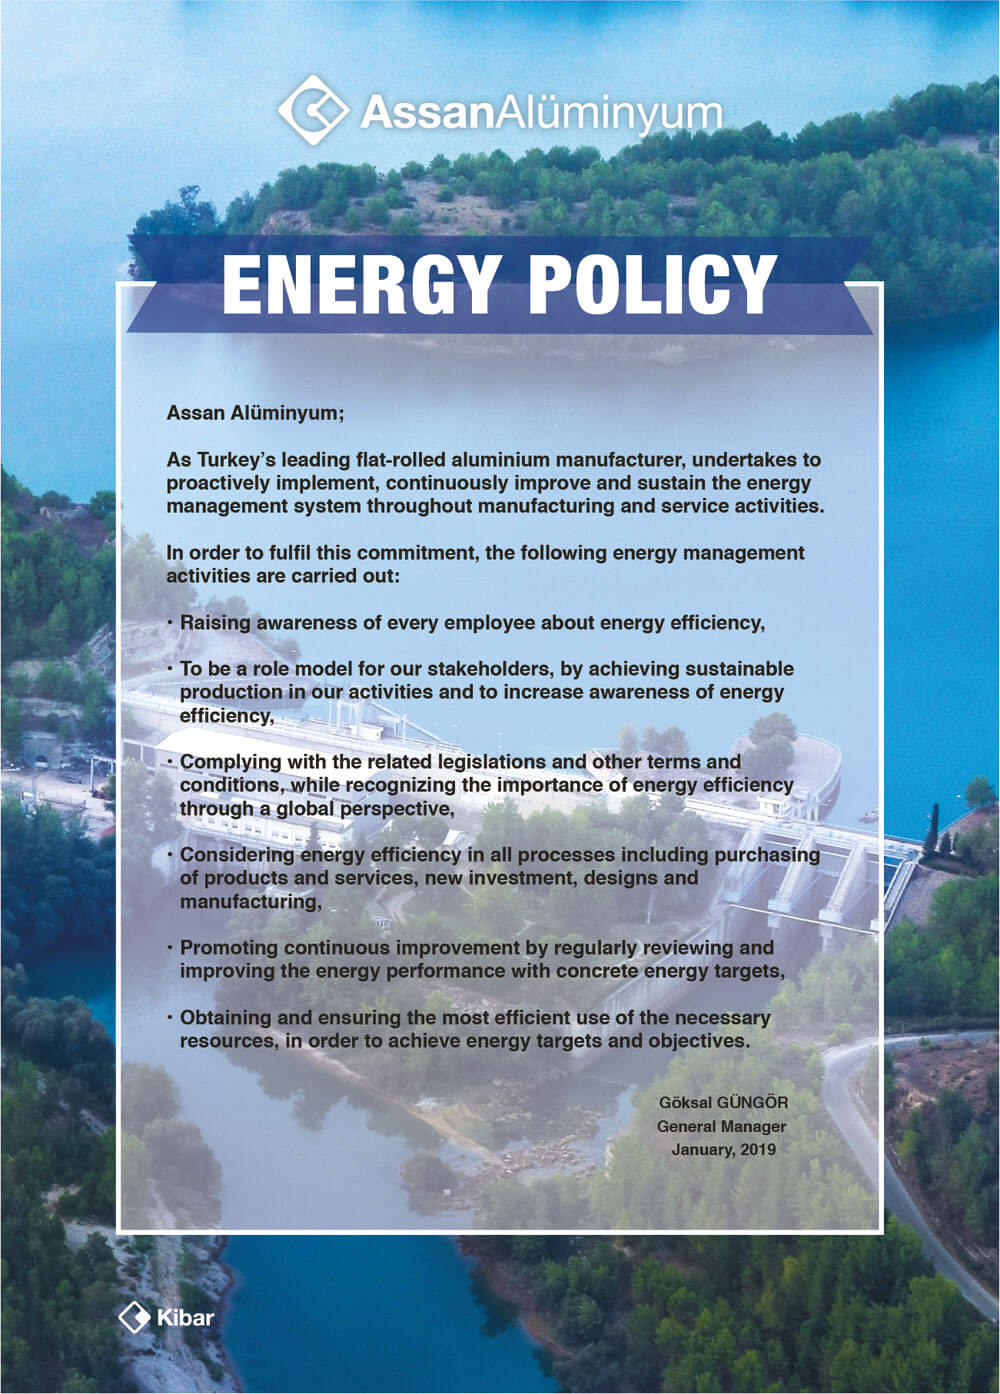 Assan Aluminyum Energy Policy